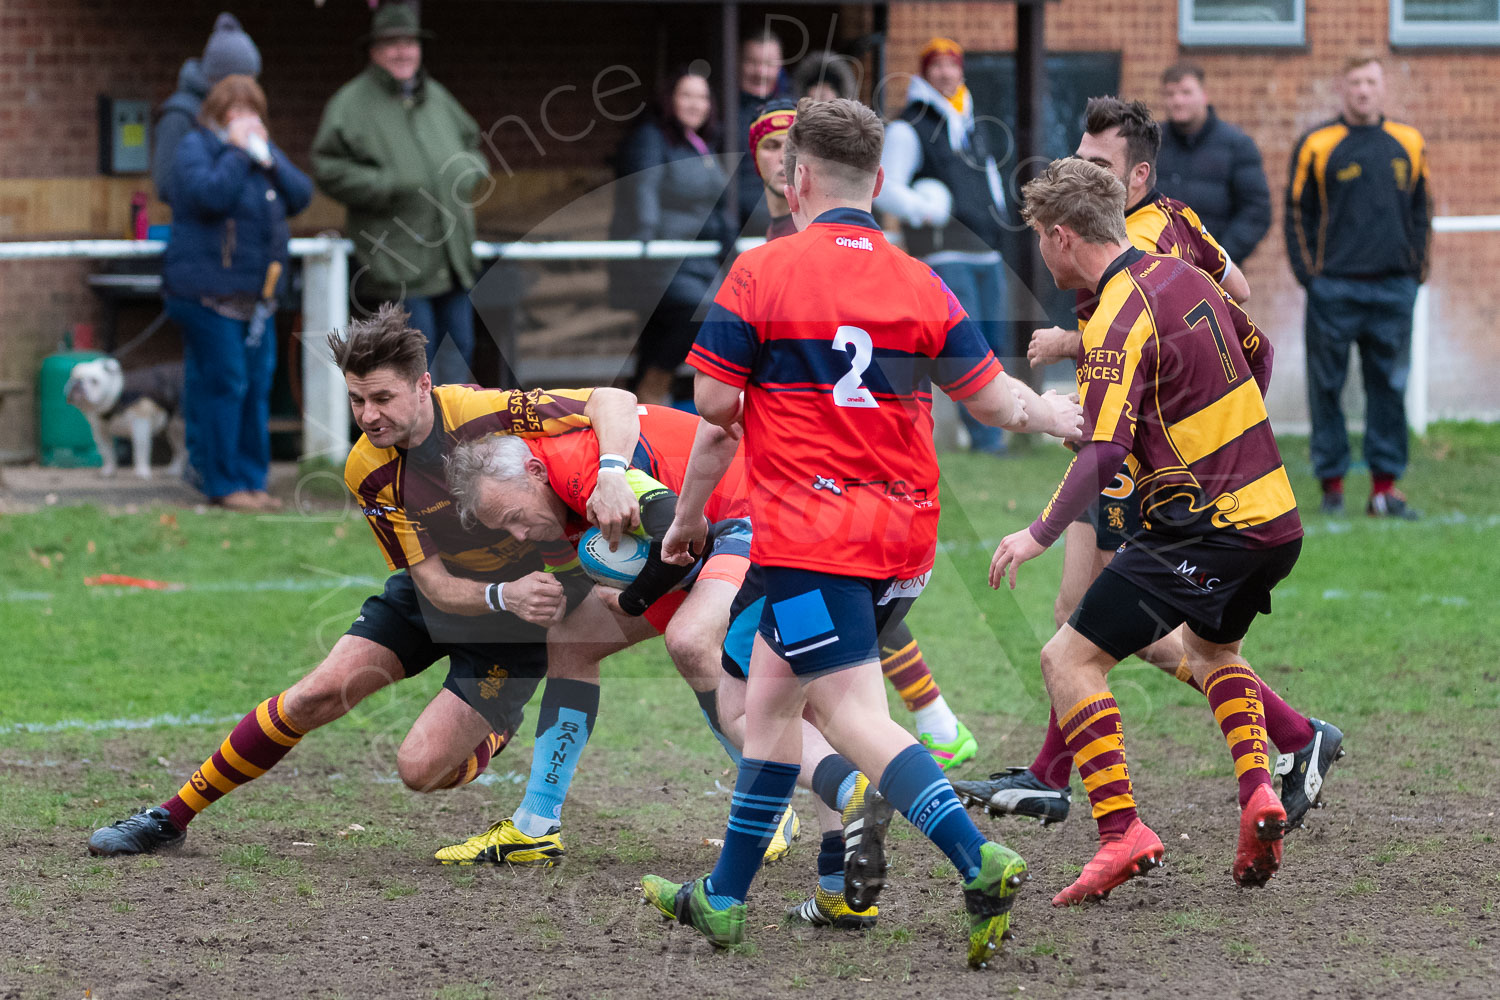 20181027 Amp Extras vs St Neots 2nd XV #2264